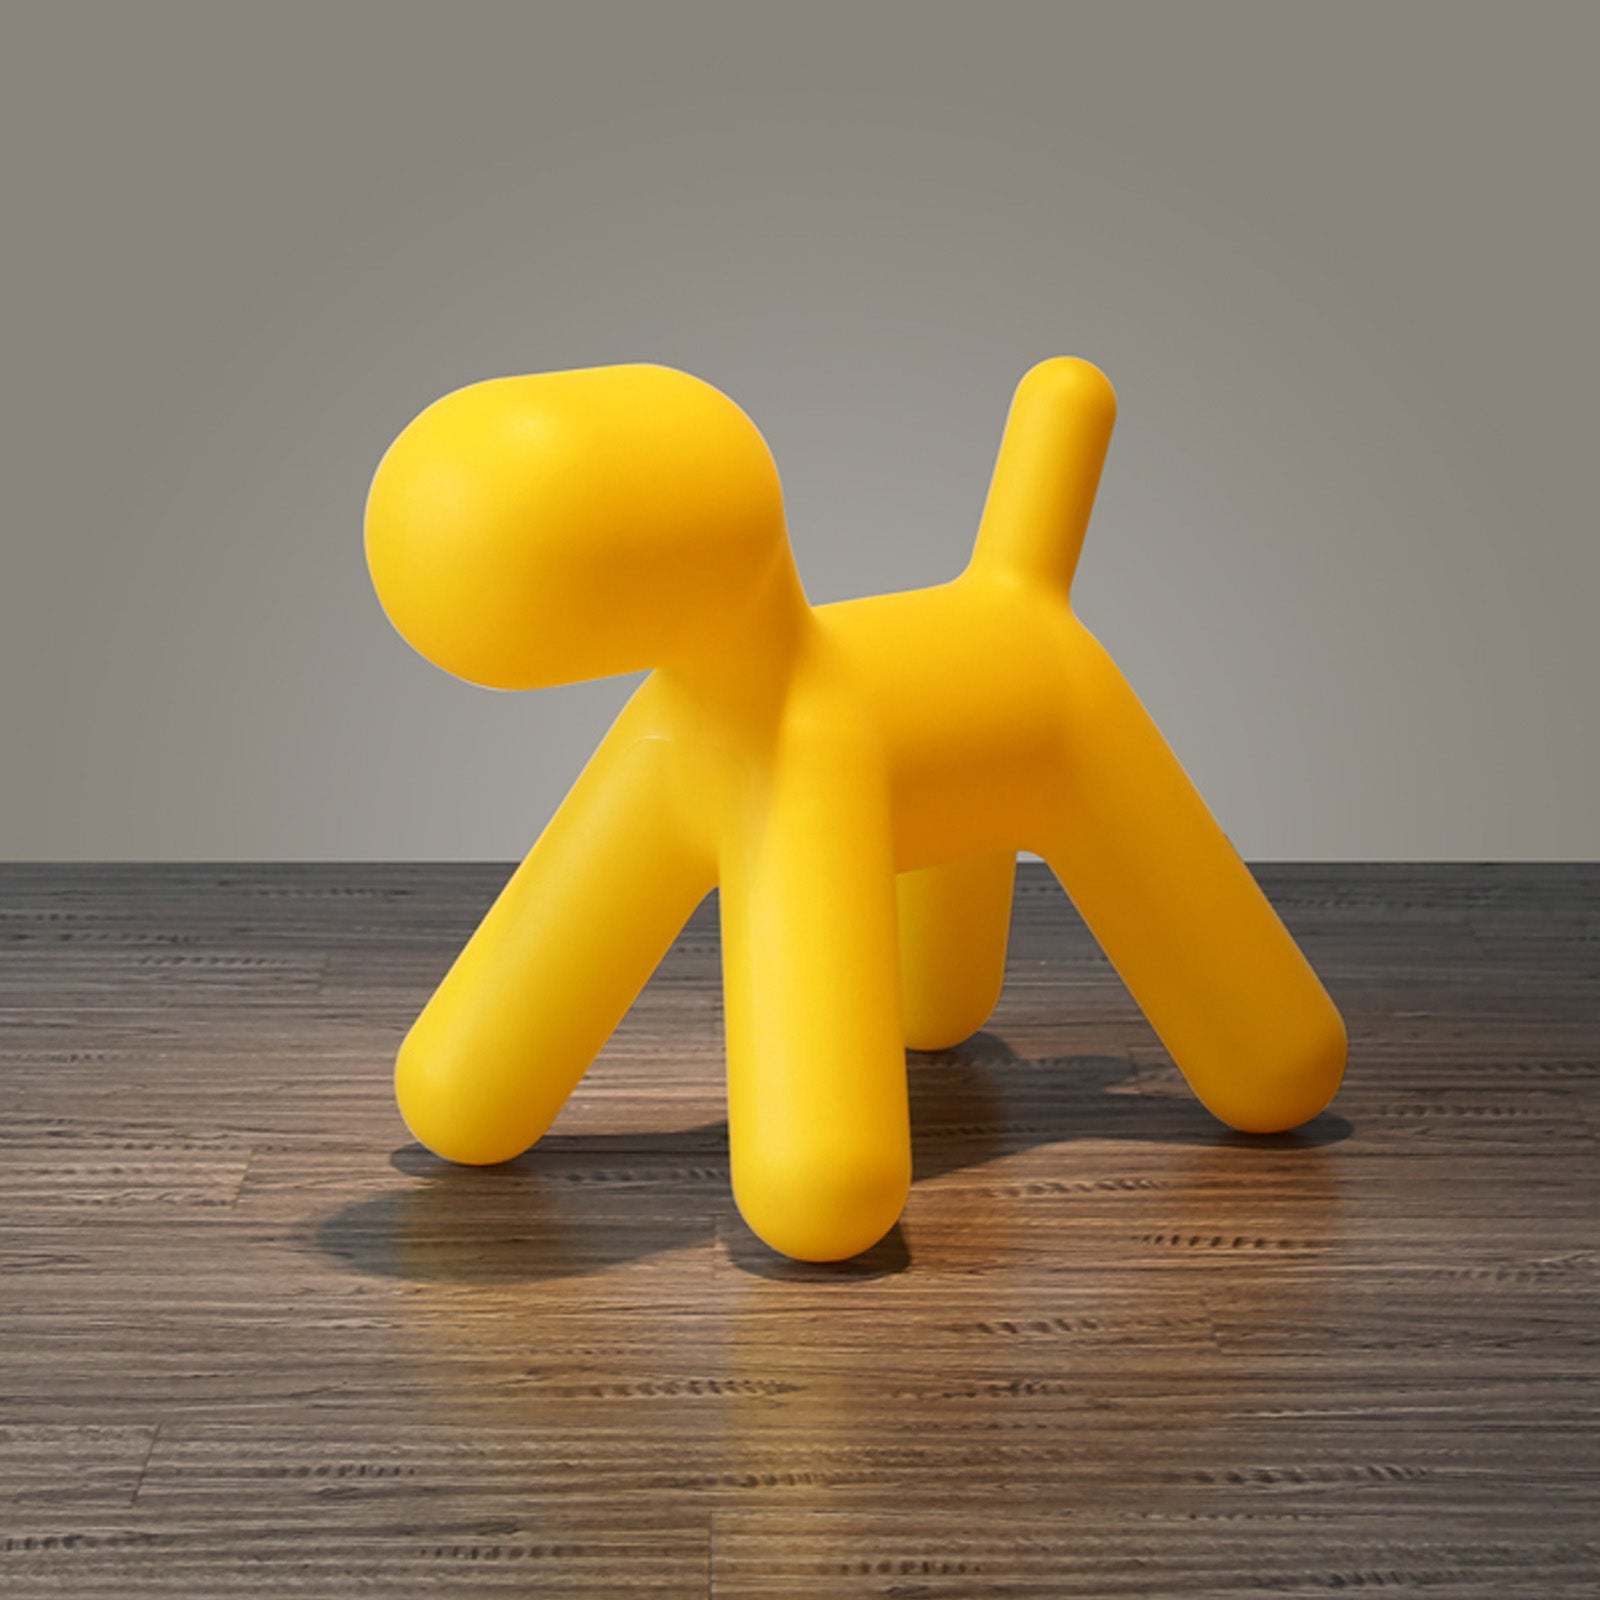 Kids Stool -acrylic-  PC-025-Y -  كرسي اطفال - اكريليك - Shop Online Furniture and Home Decor Store in Dubai, UAE at ebarza